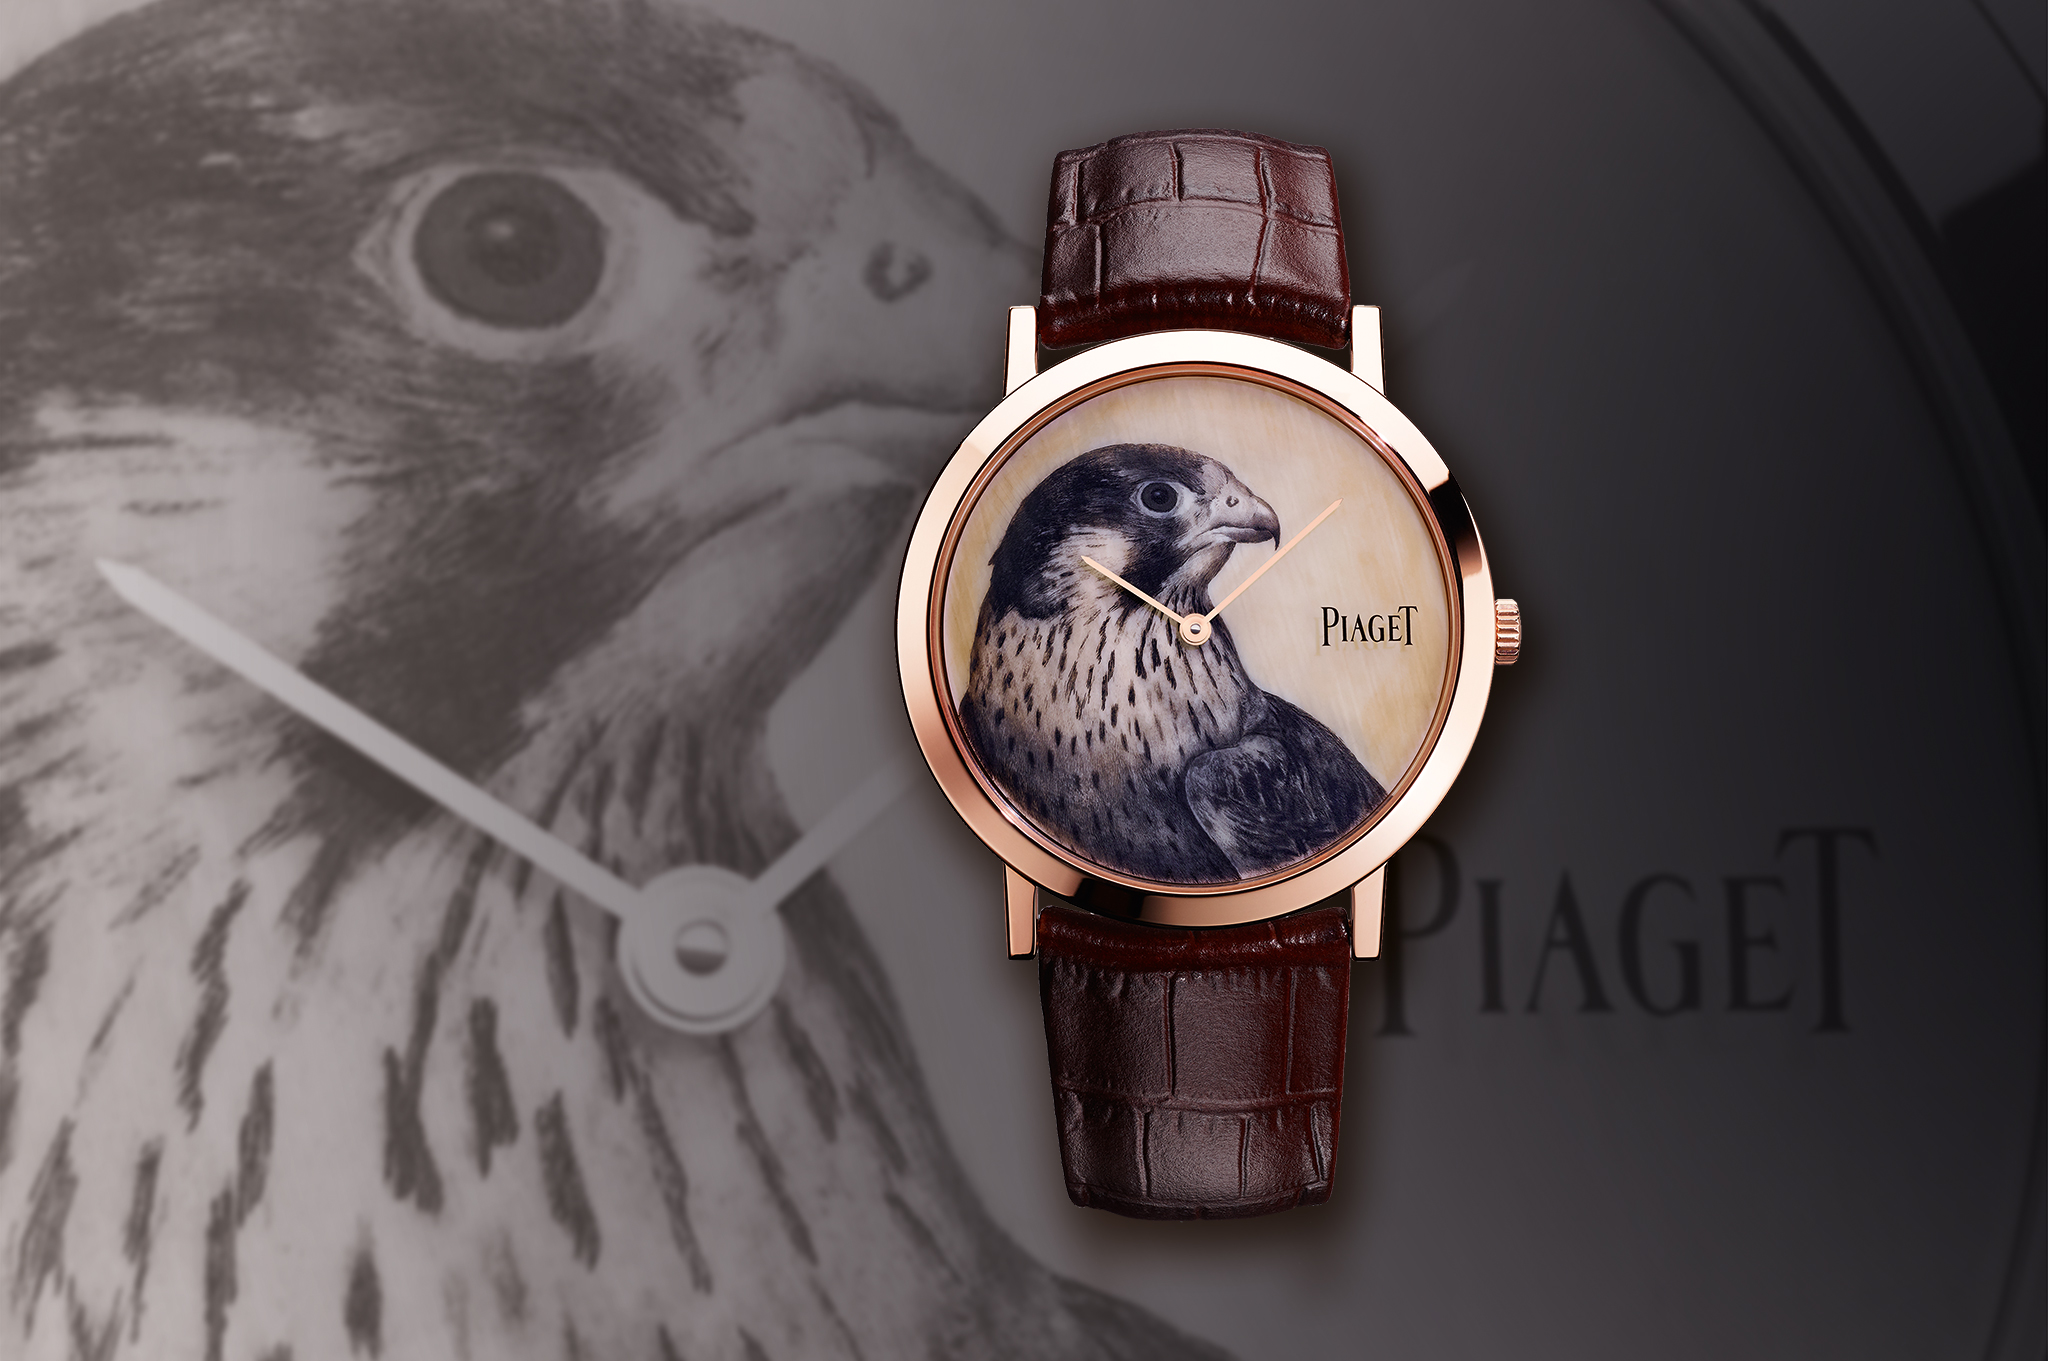 Piaget animal replica